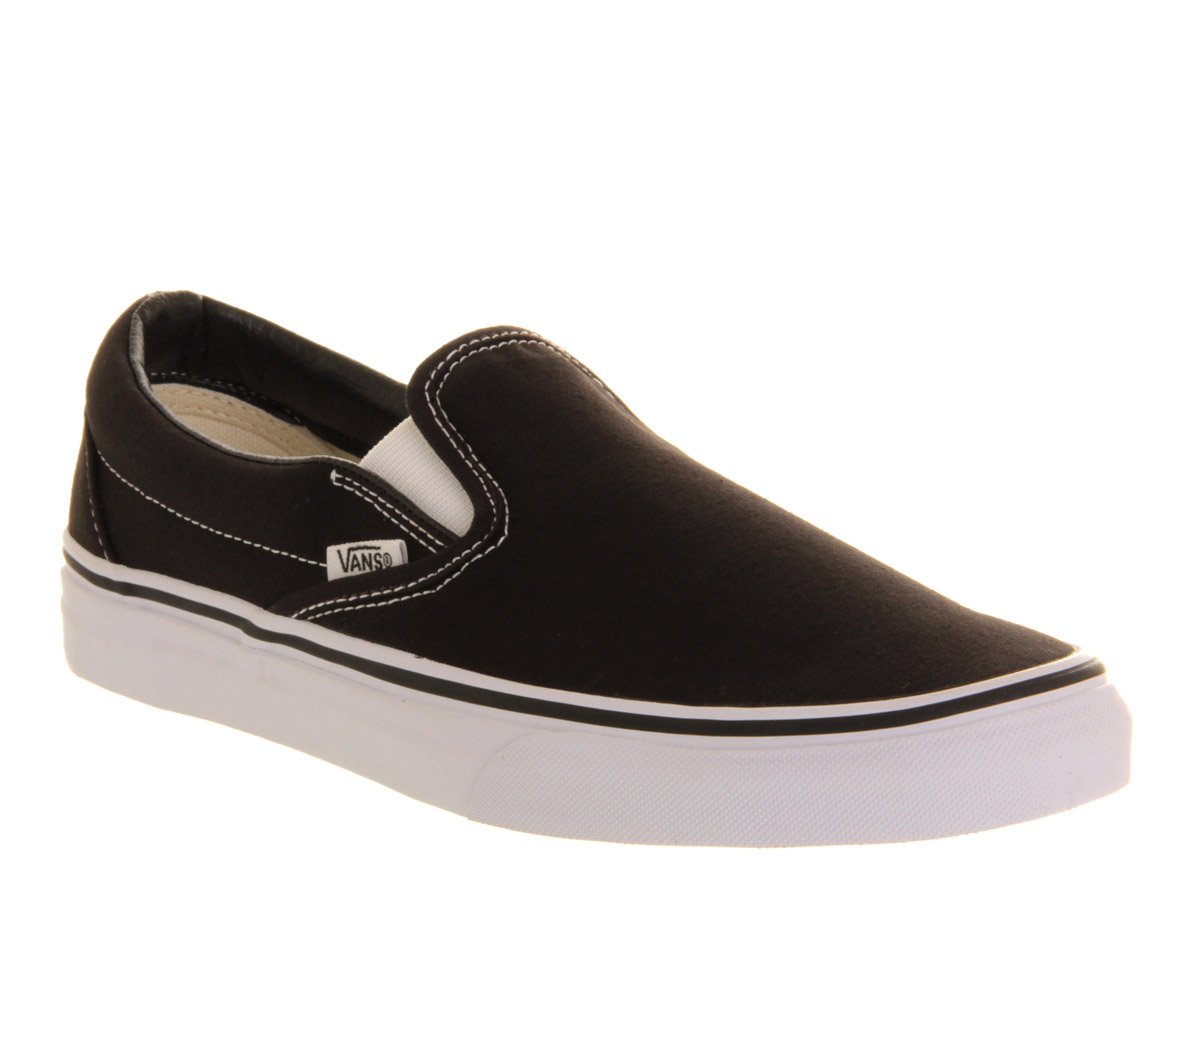 Mens White Vans Slip On Shoes